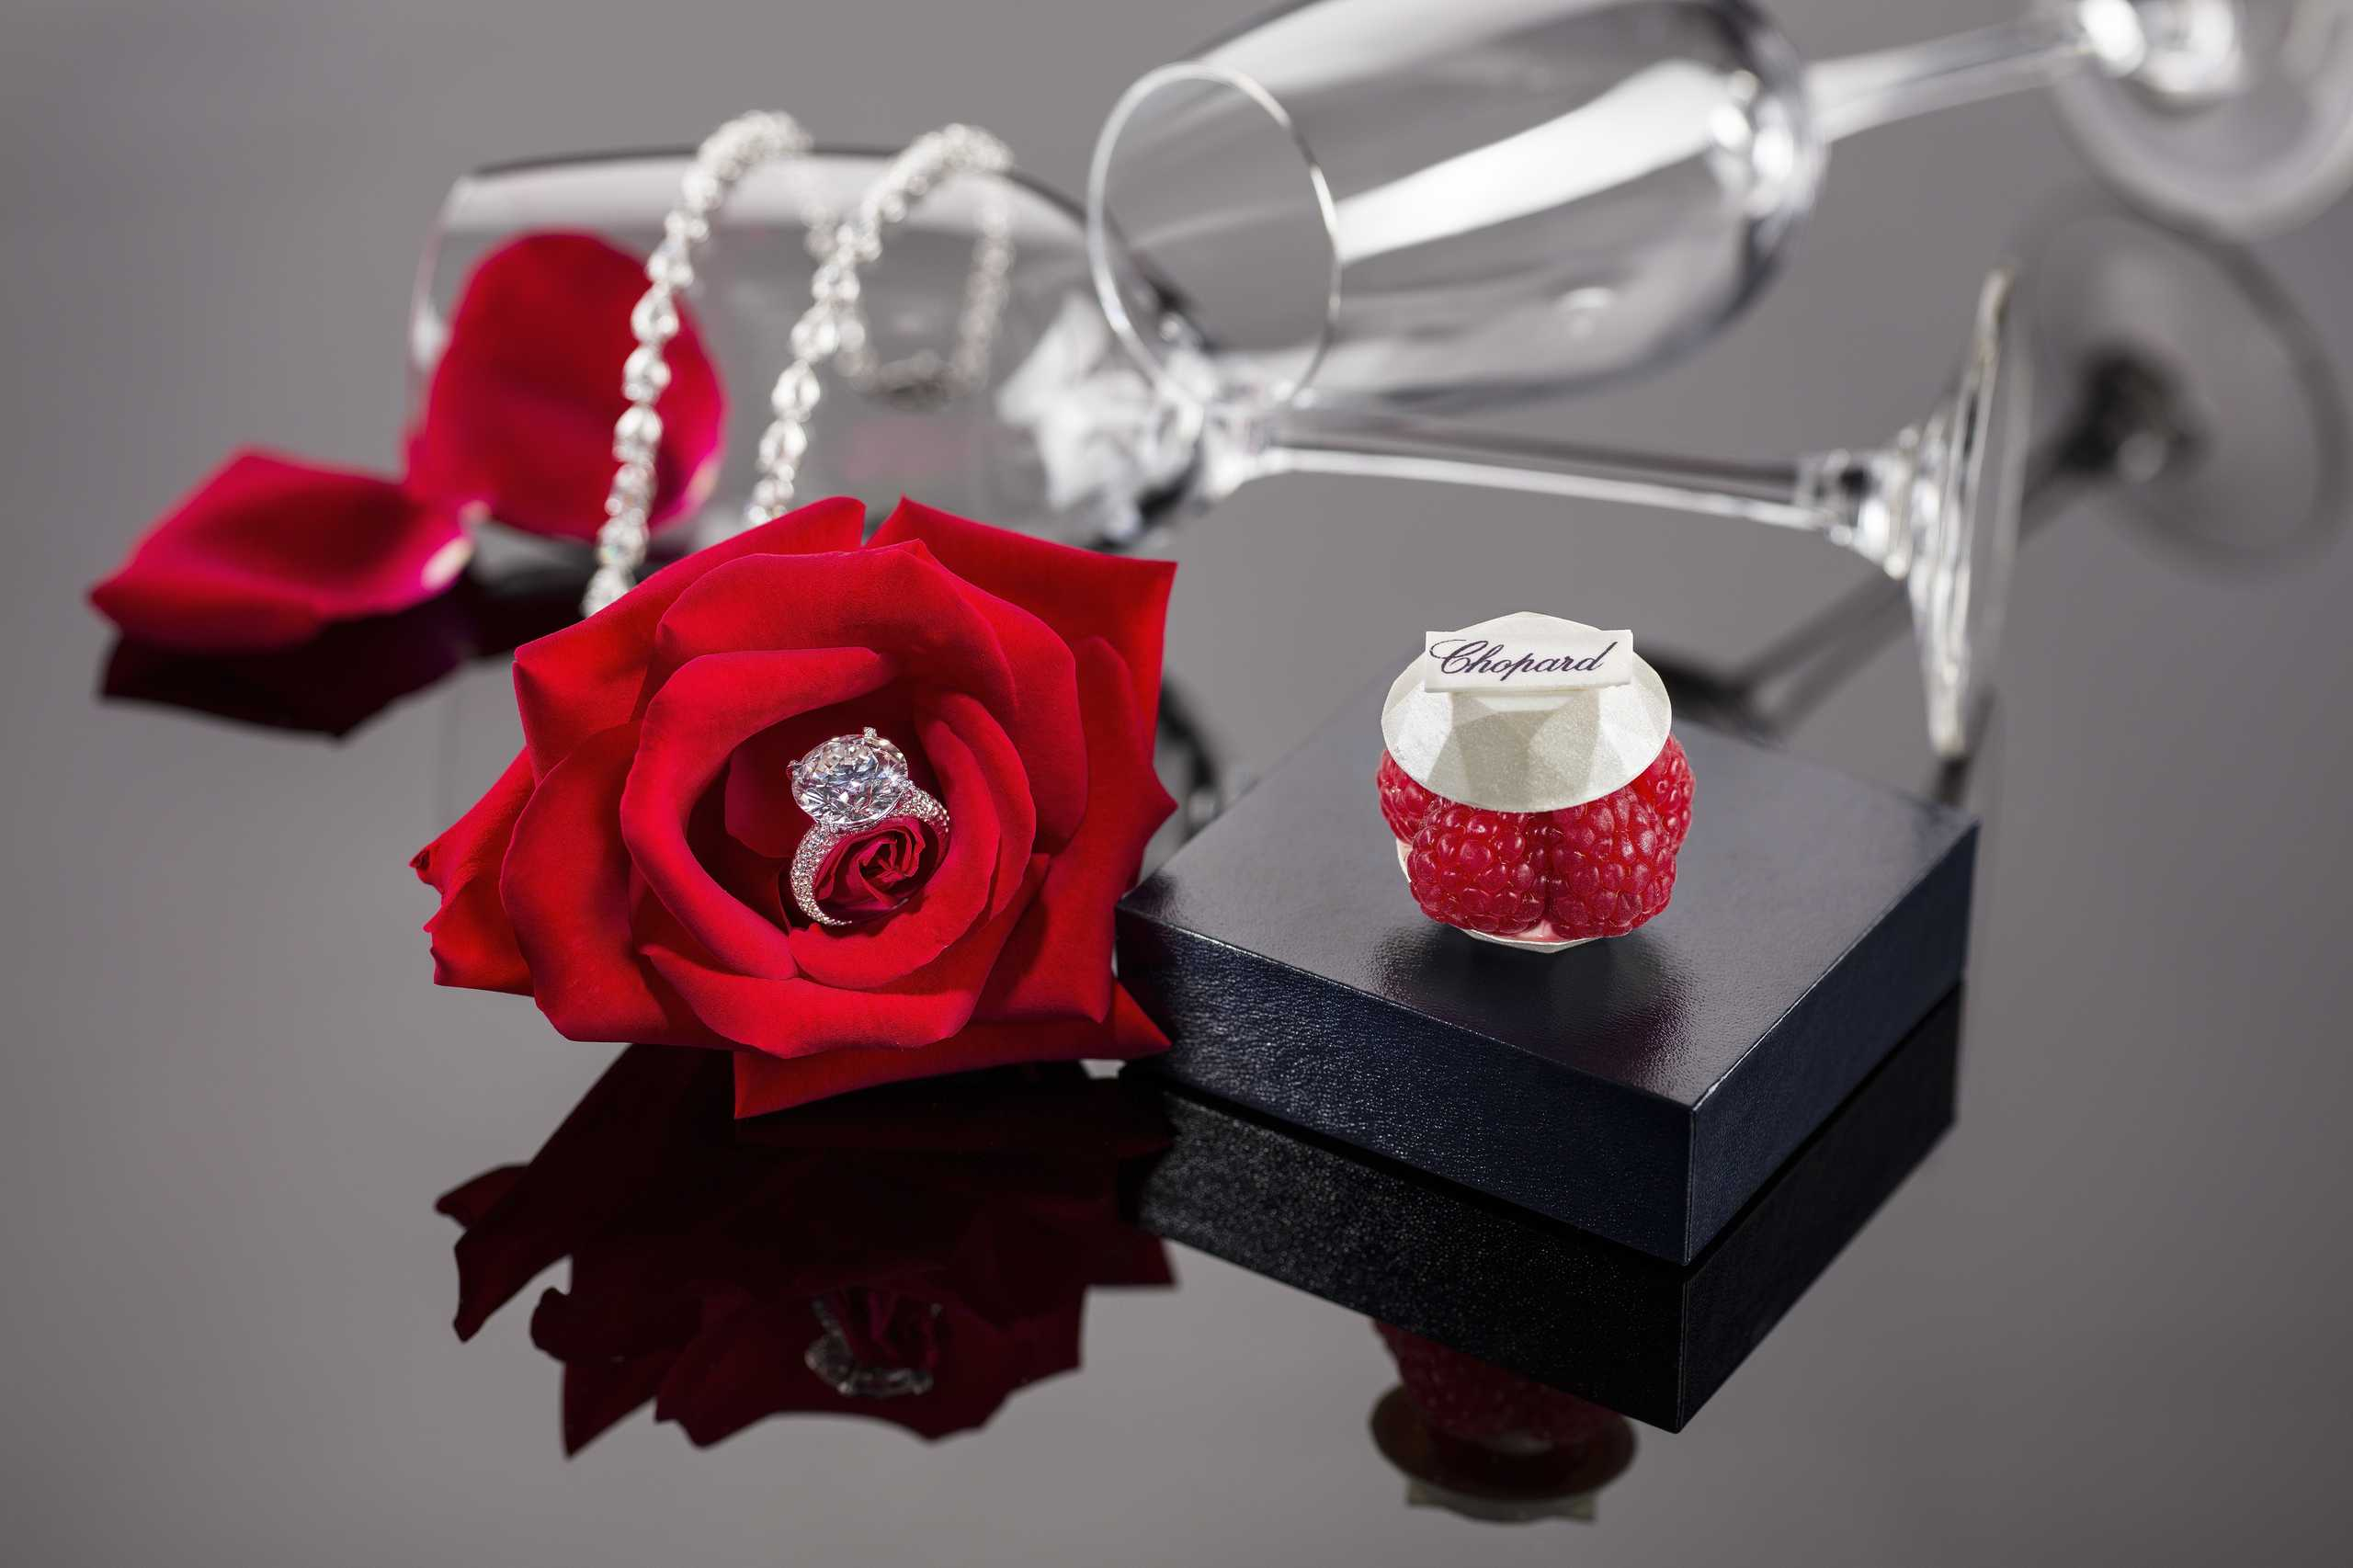 Chopard ring with red rose and pastry